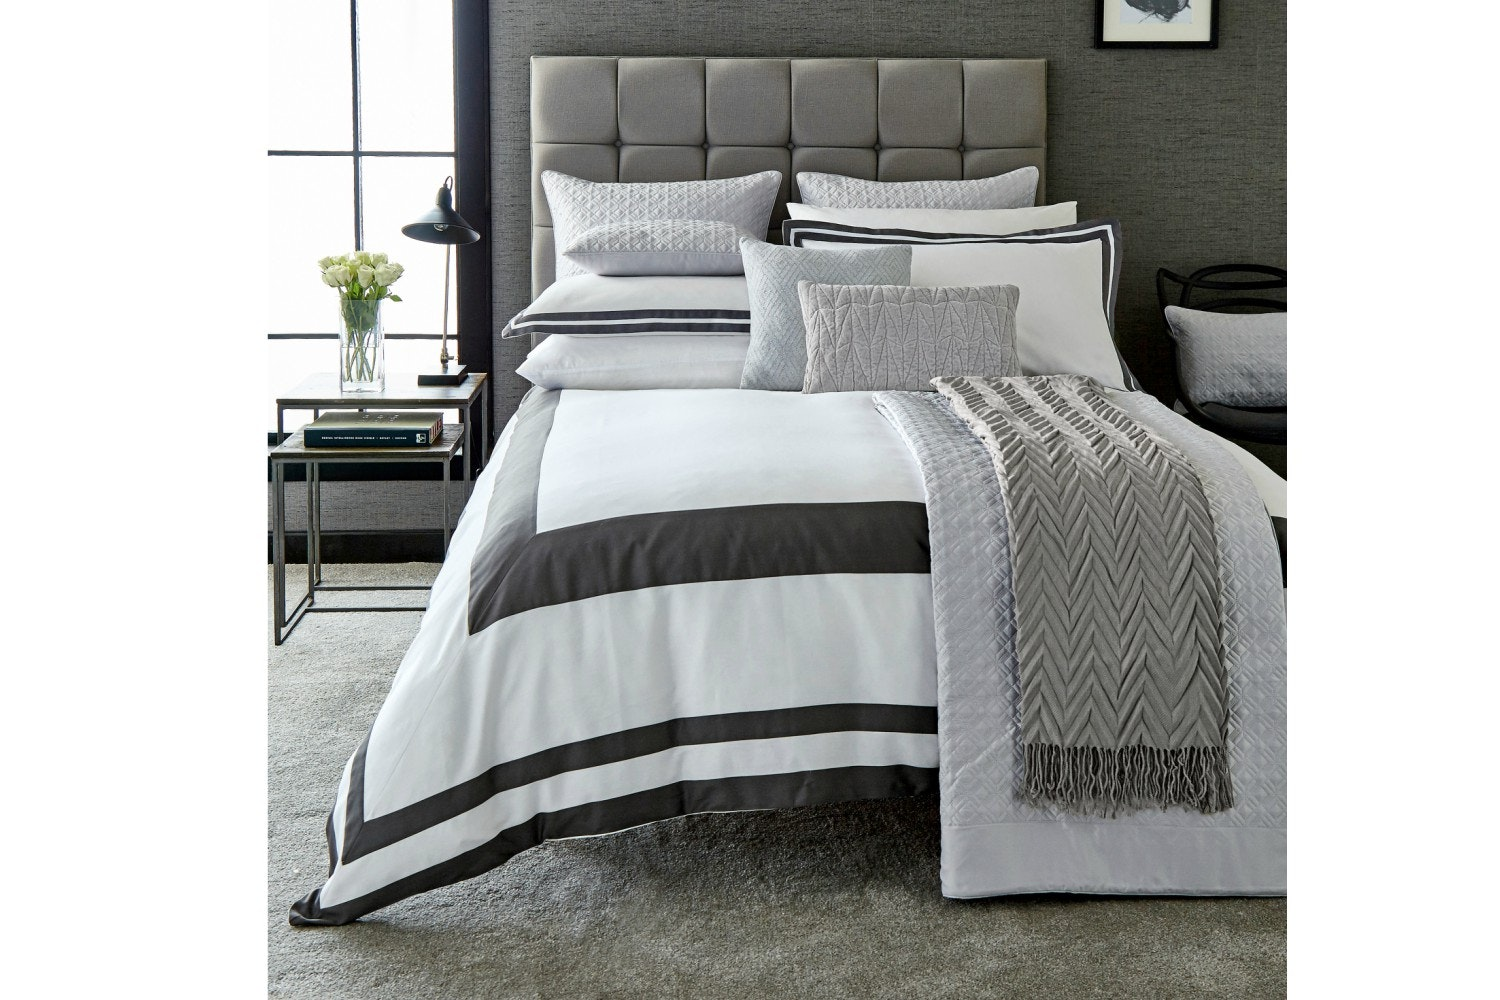 Imperial Graphite & White Duvet Cover | Super King